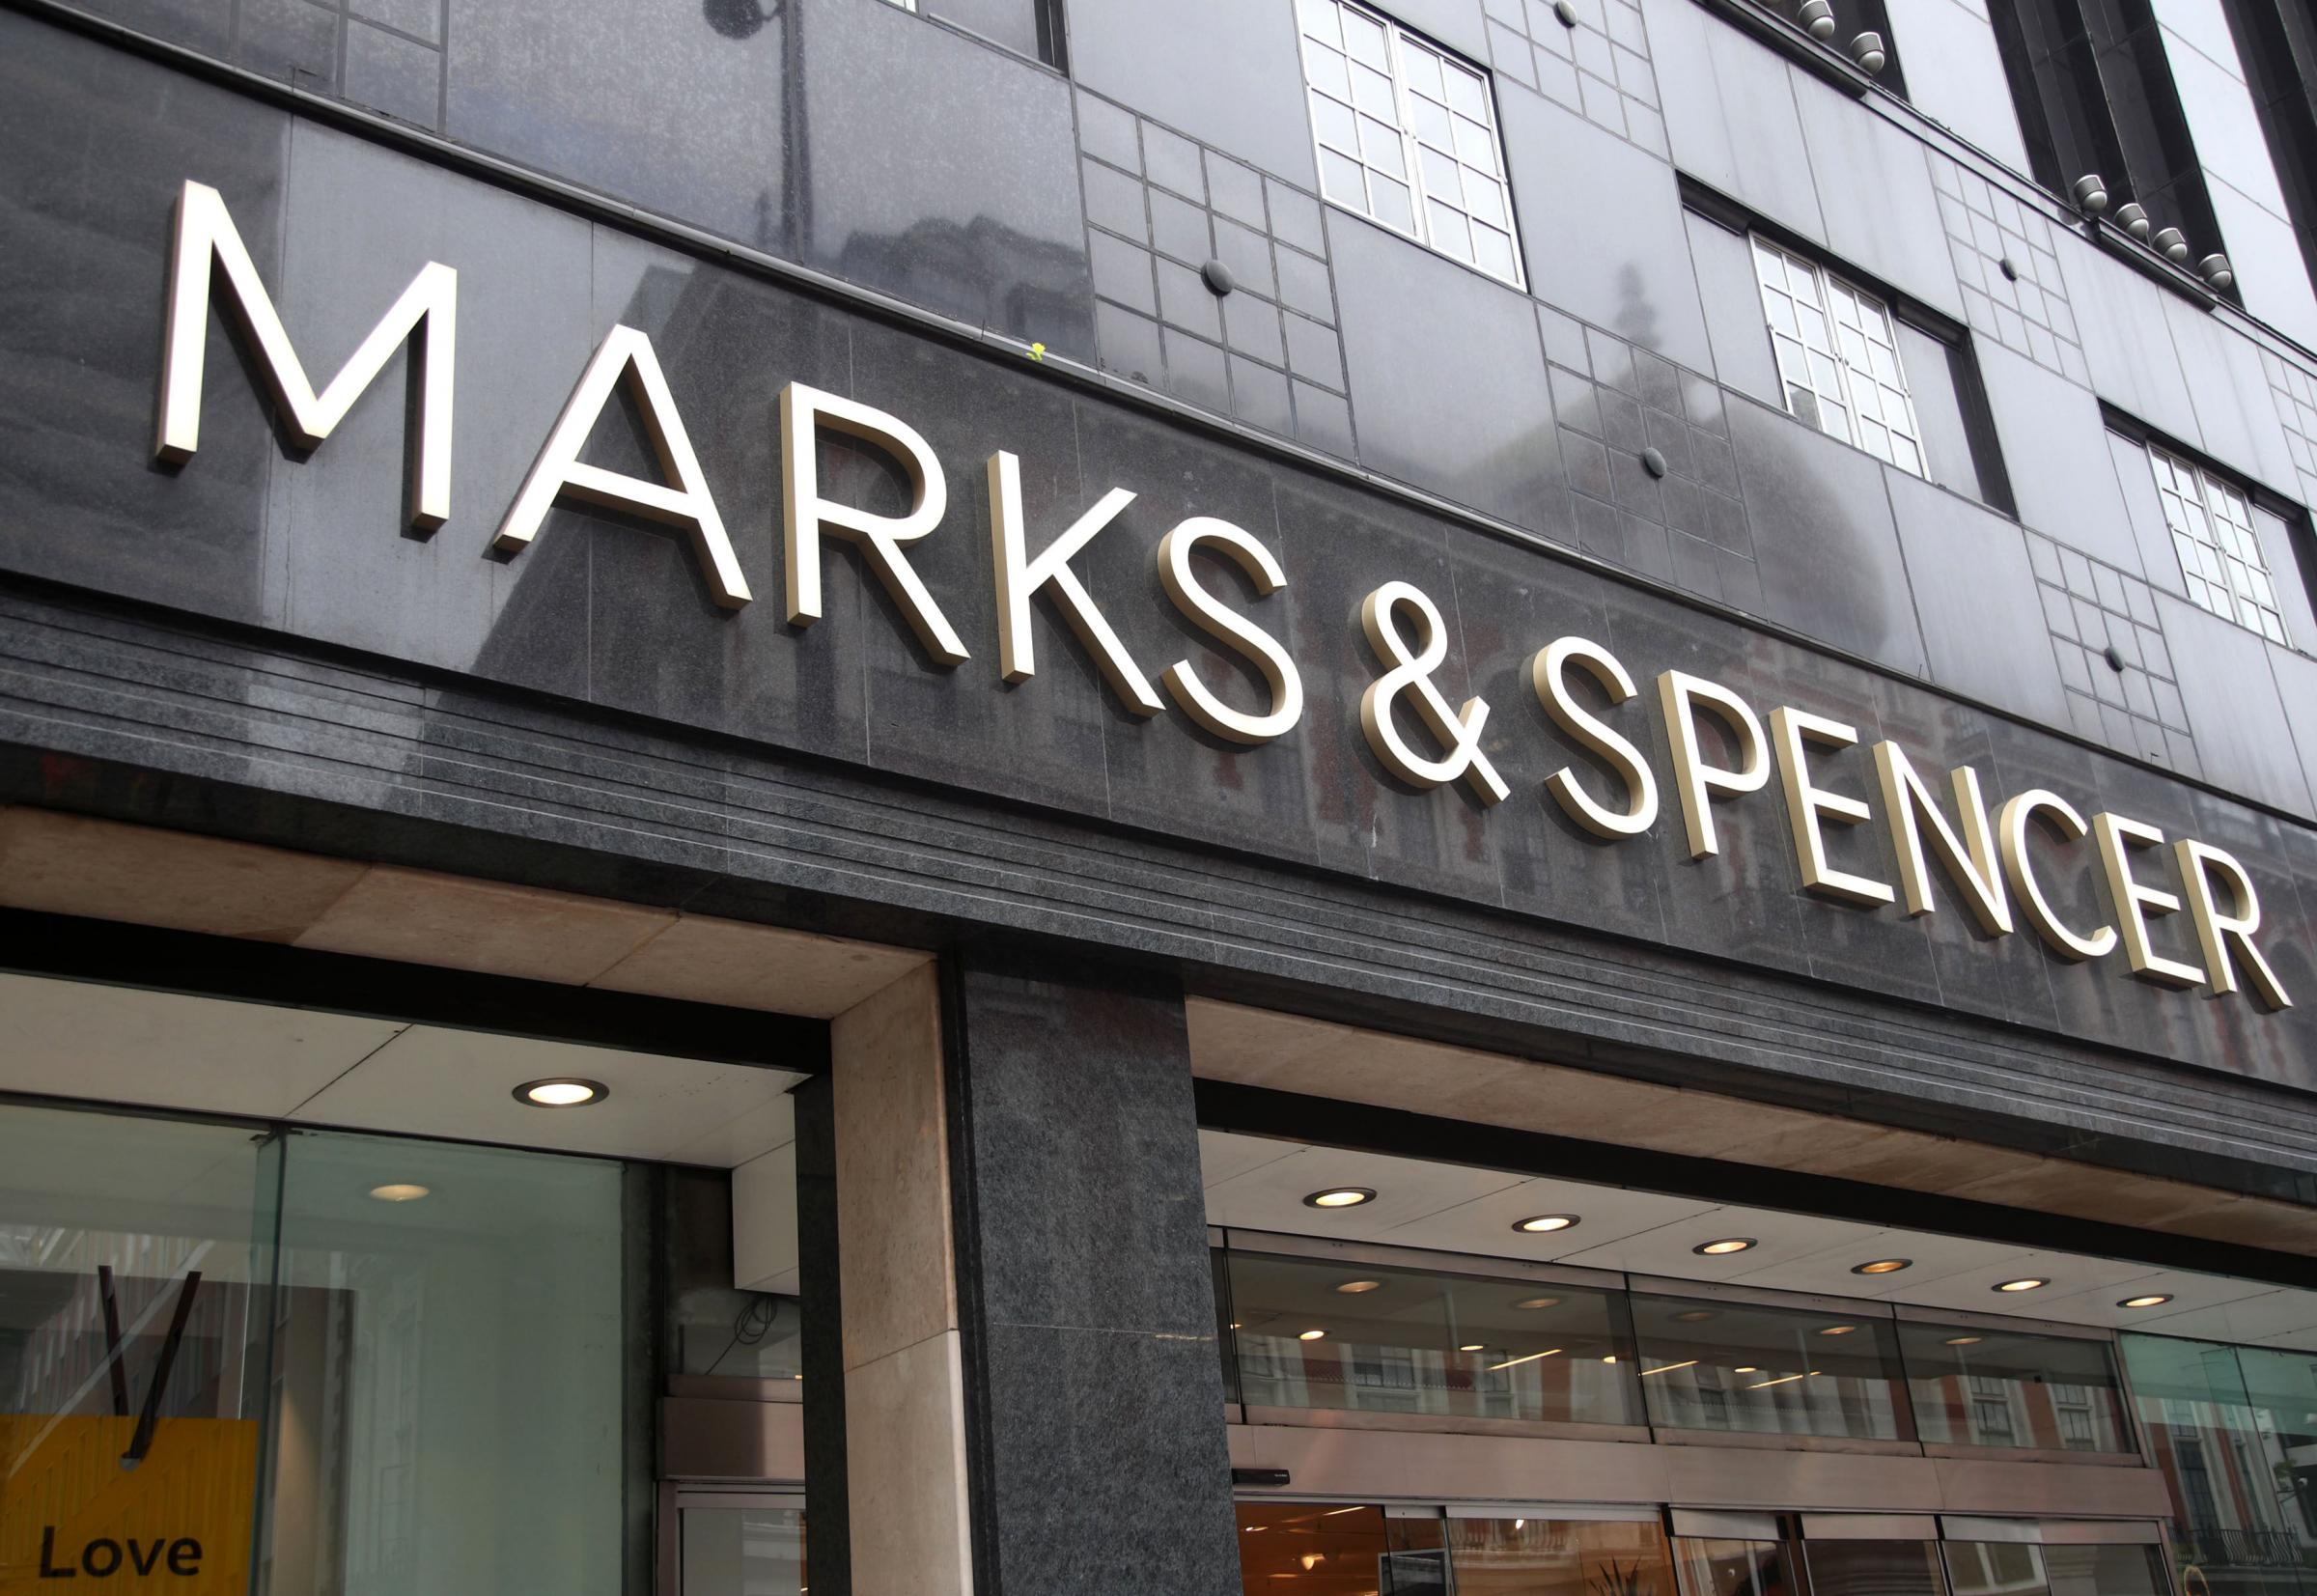 Halifax's Marks and Spencer saved from axe as retail giant announces closures